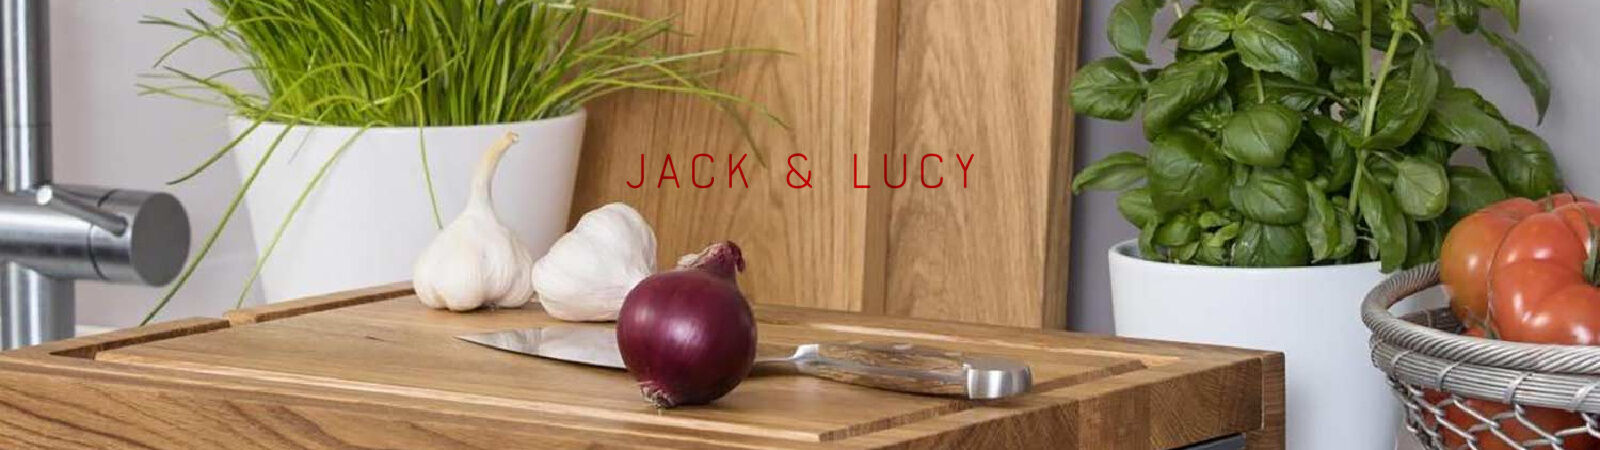 Jack & Lucy Wooden Cutting Boards & Work Stations available at Sportique.com